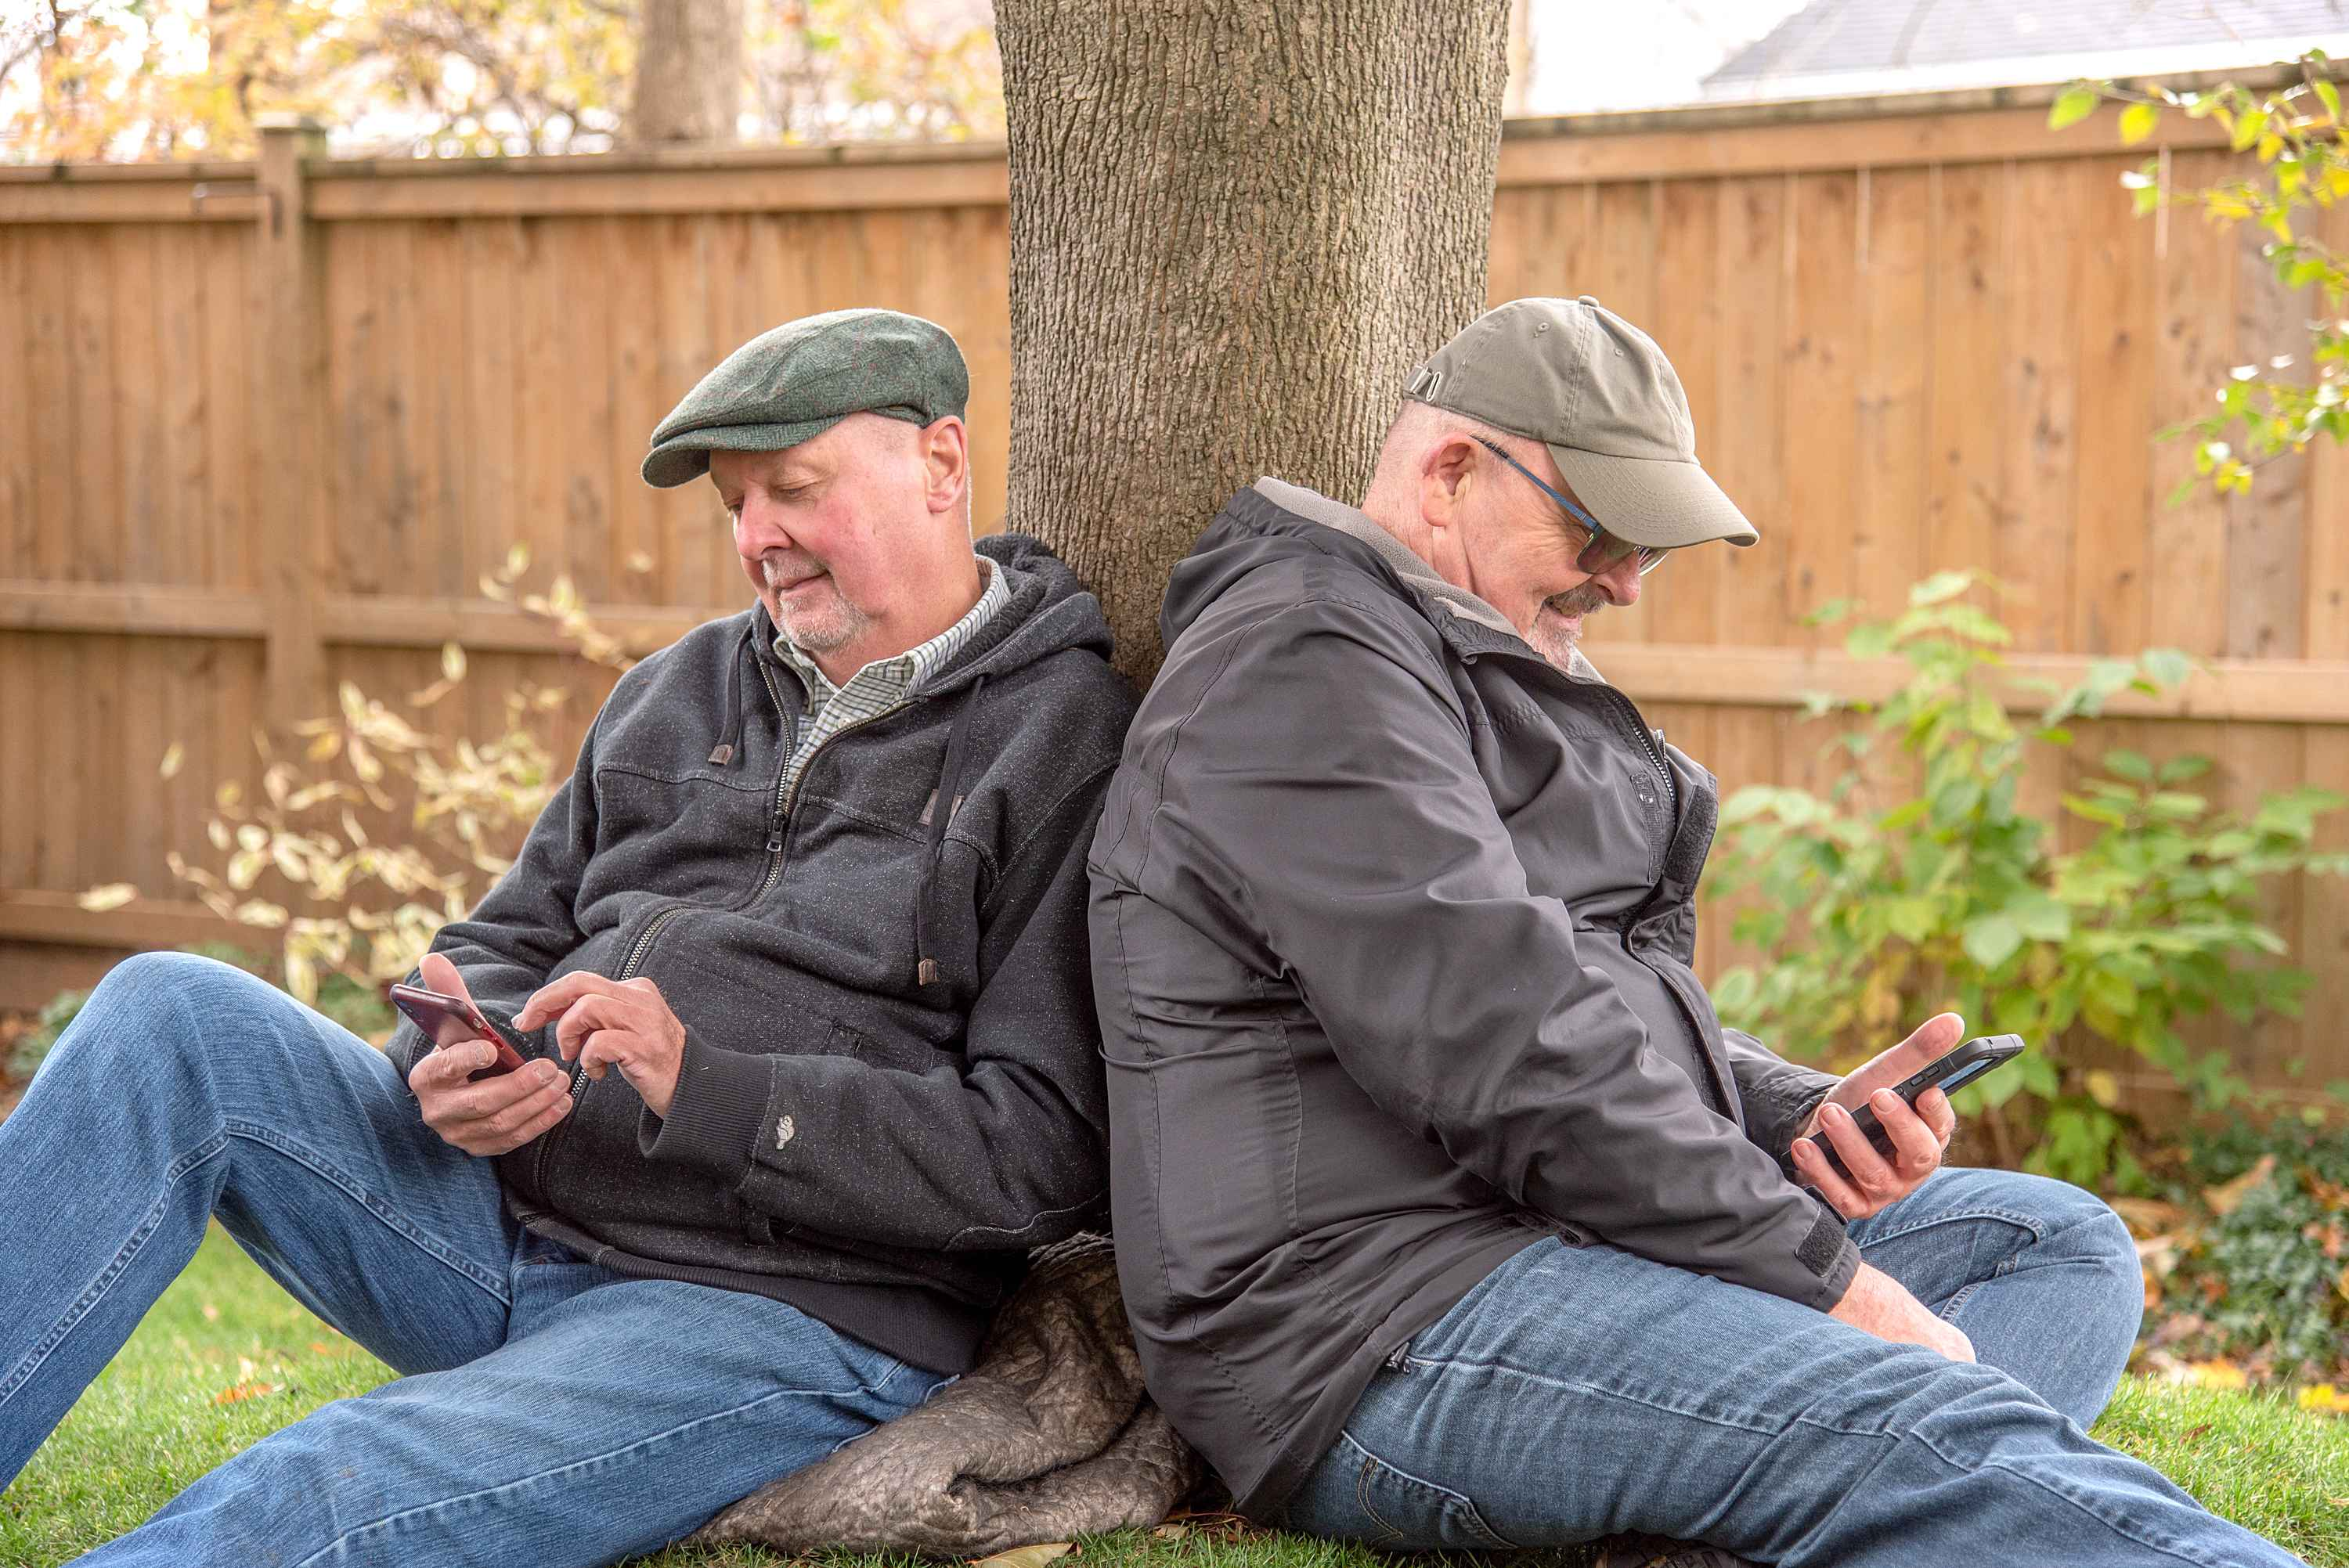 Older married gay couple leaning against a tree looking at their phones and smiling